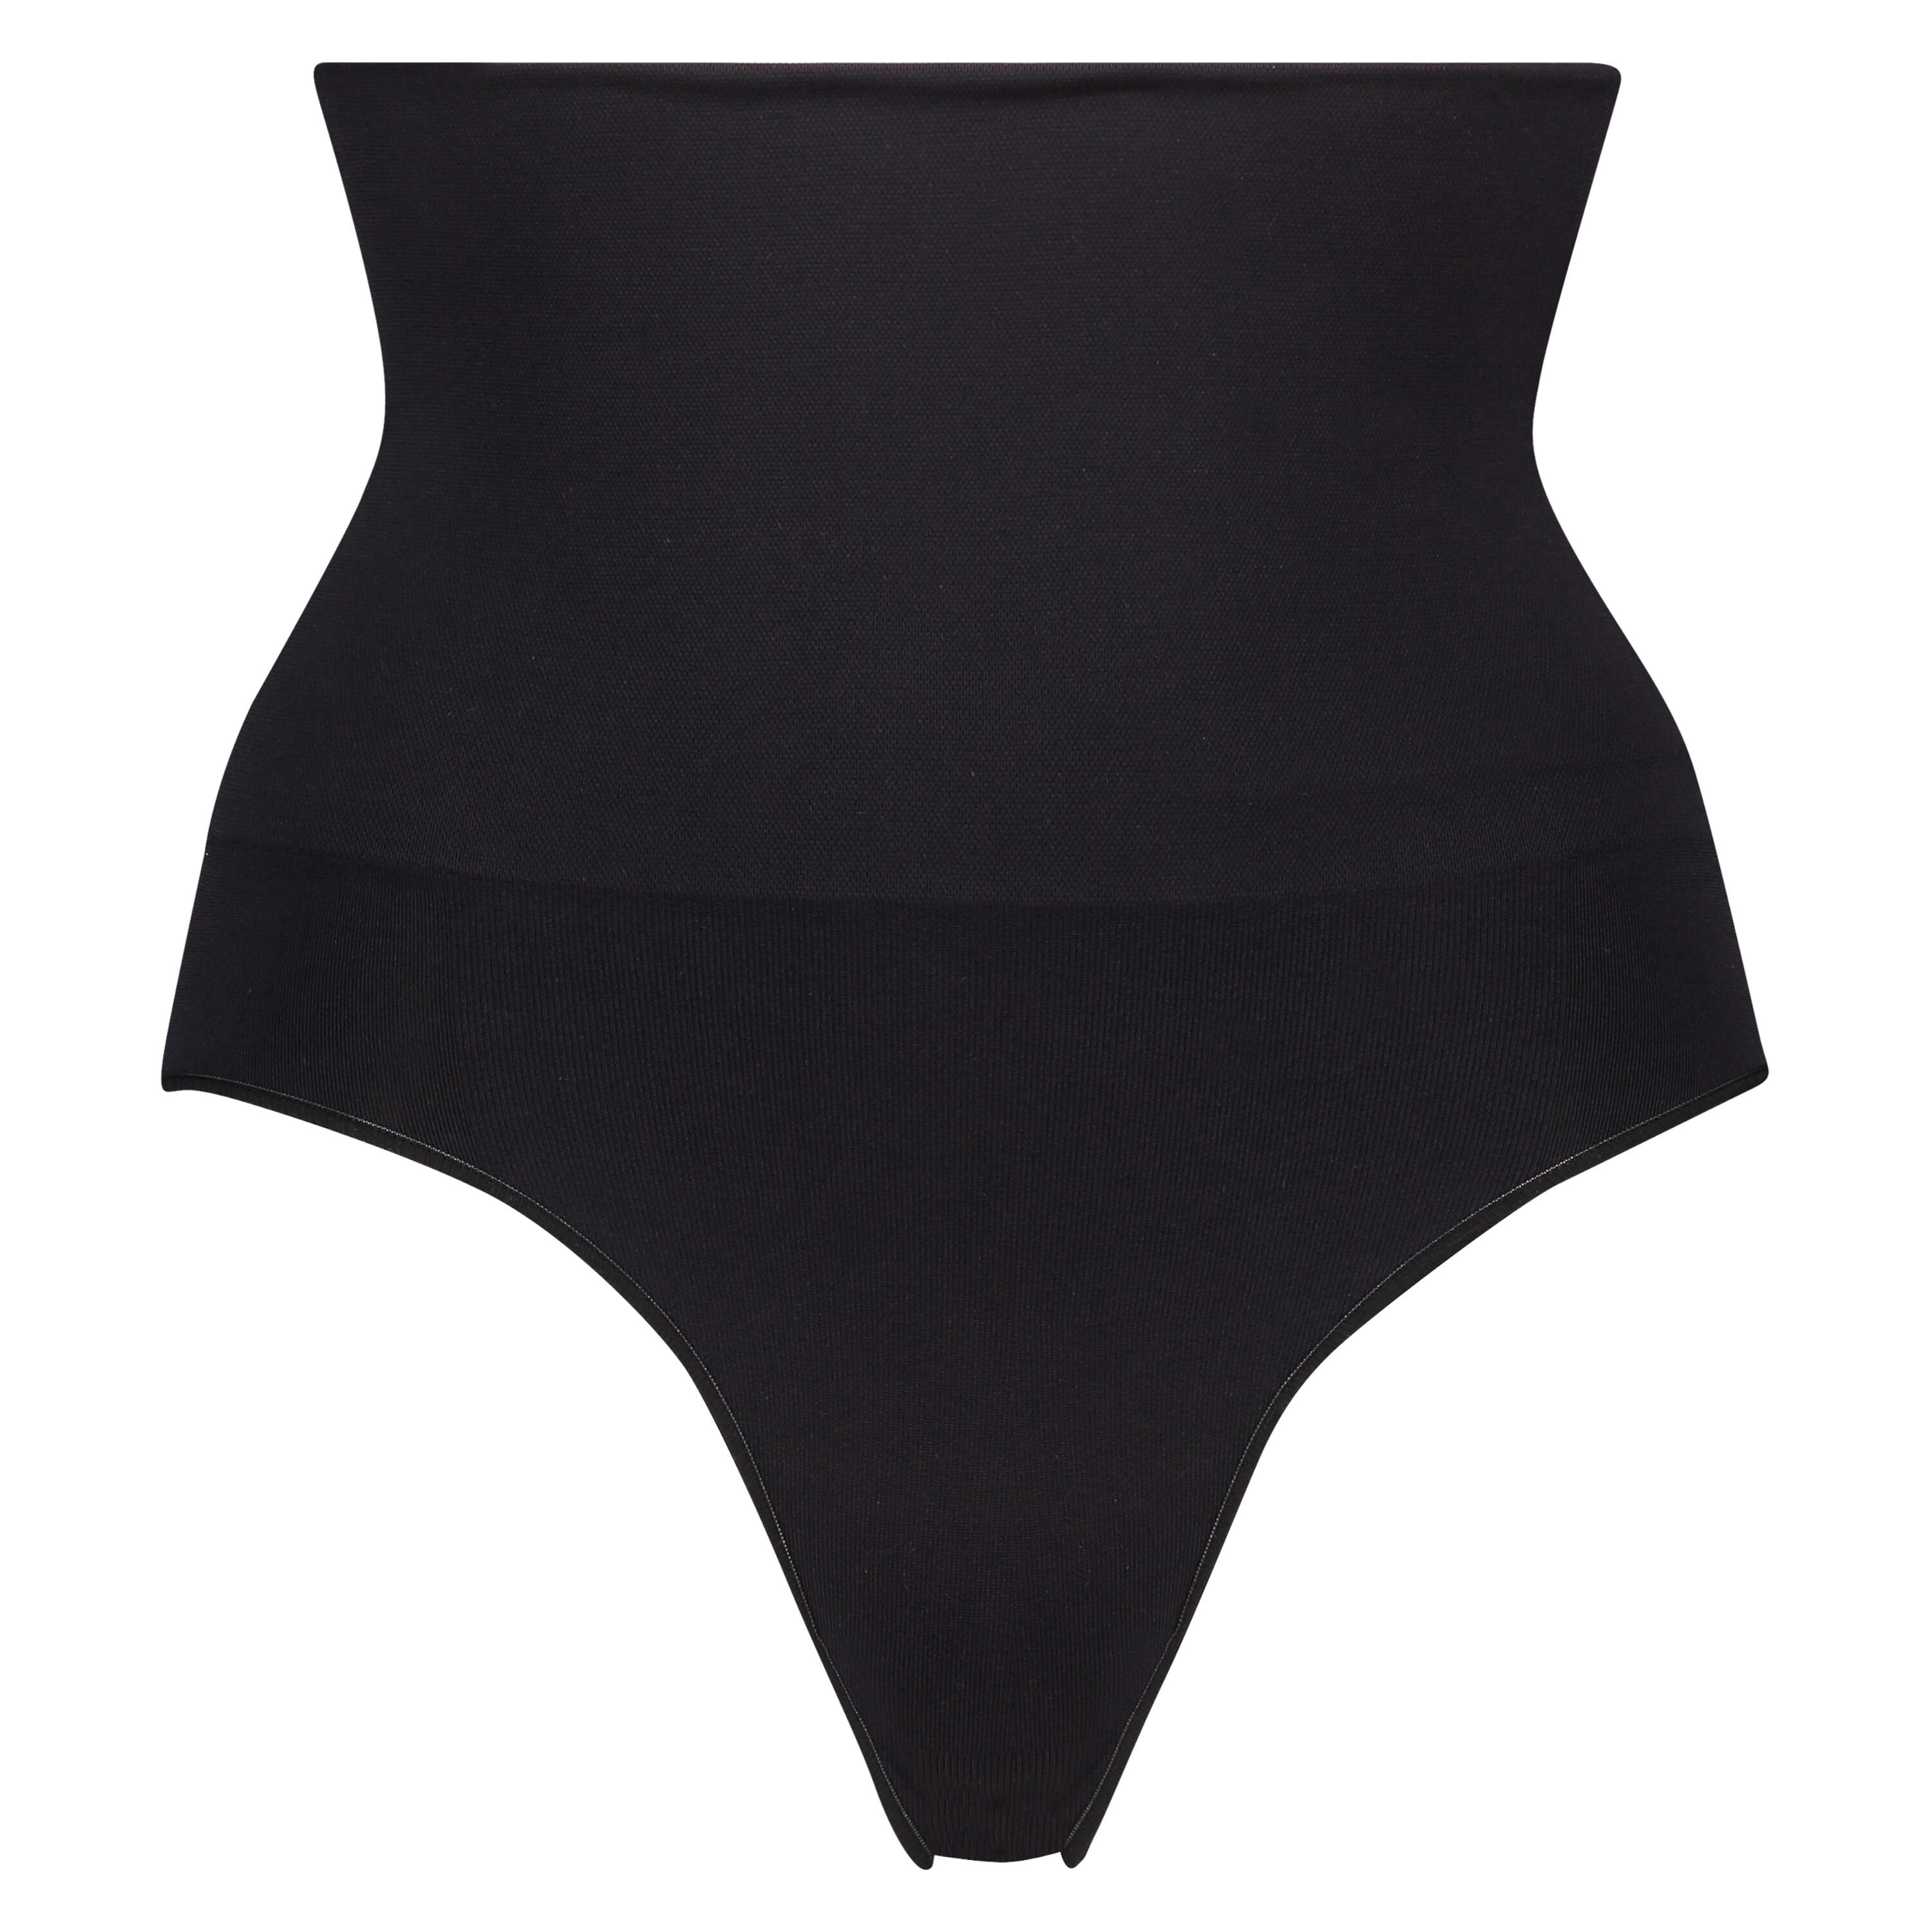 Firming high knickers - Level 2, Black, main